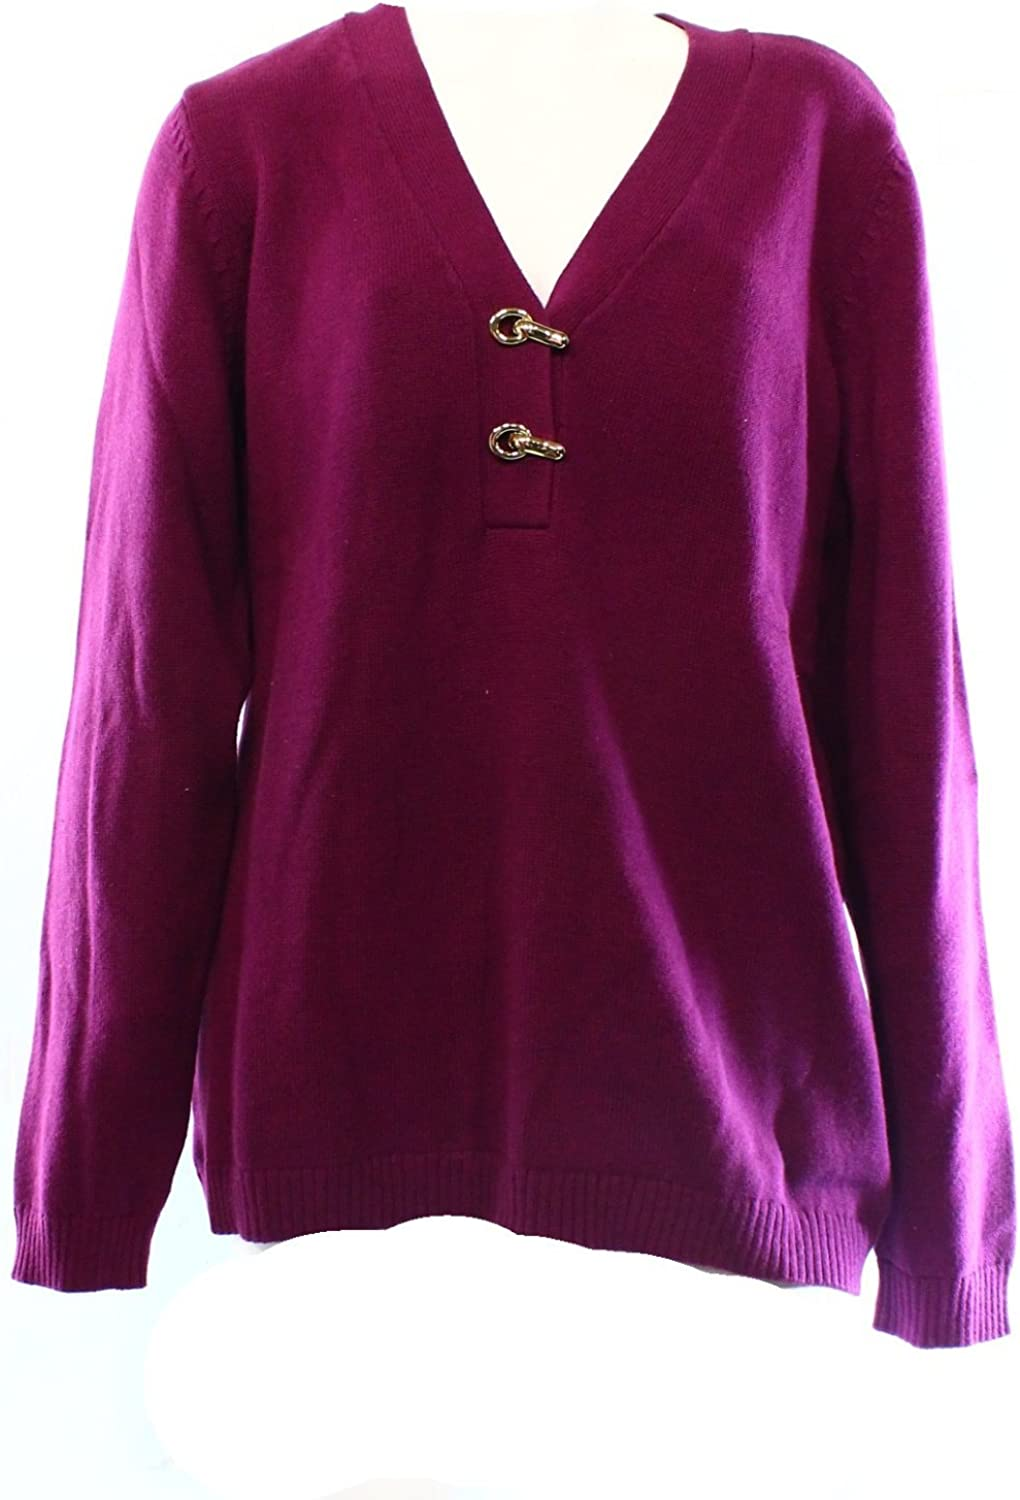 CHARTER CLUB Women's Plus Size Buckled-clasp Detail V Neck Sweater Top